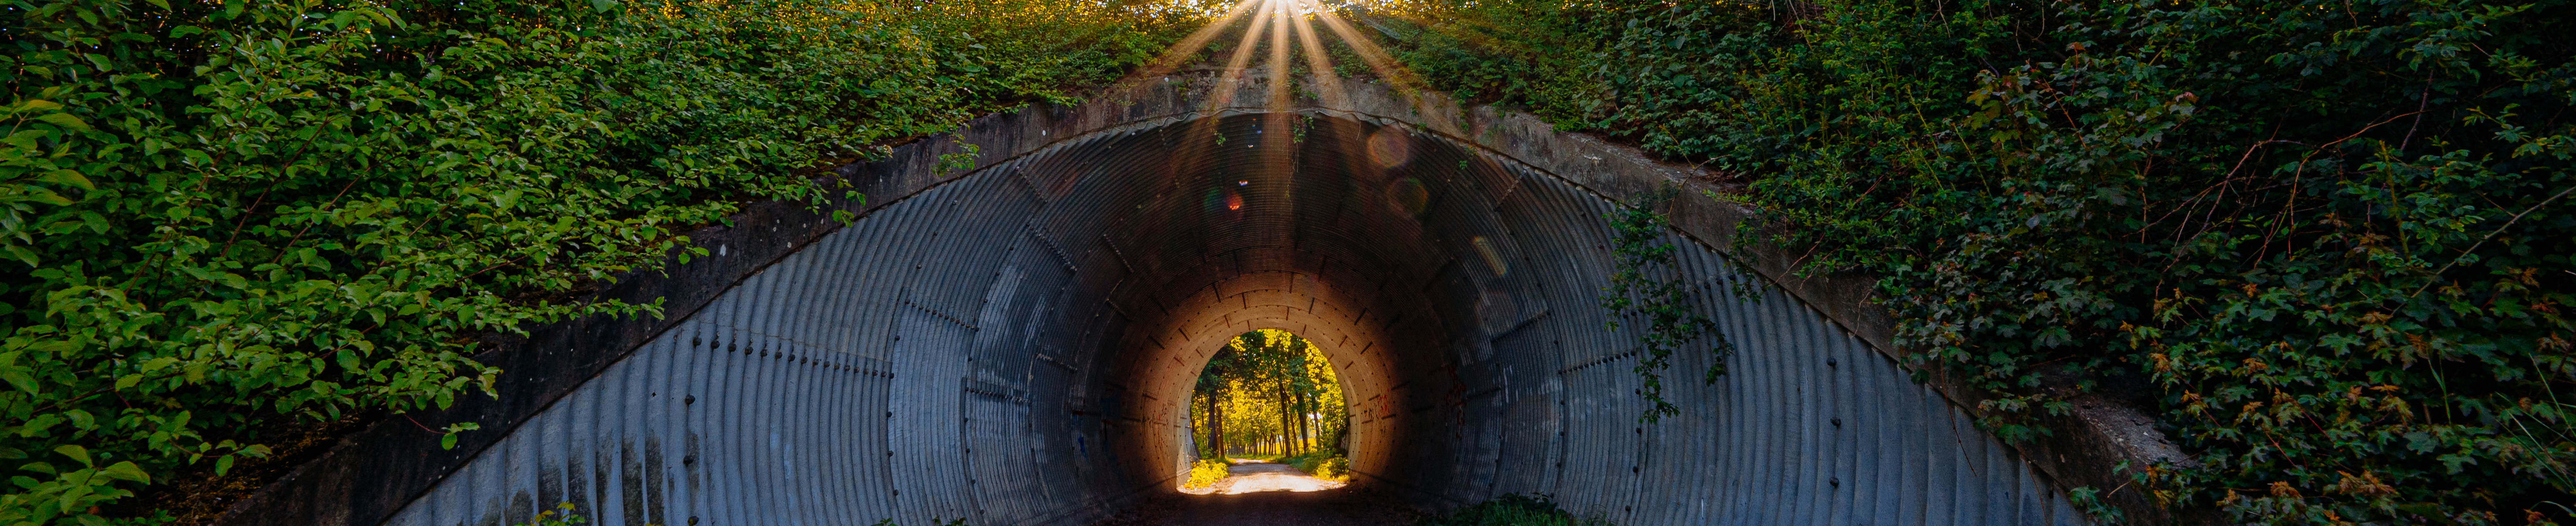 Daxl-Eiglsperger – Tunnel_2020_SLIDER_Daxl-Eiglsperger_DSC_8222